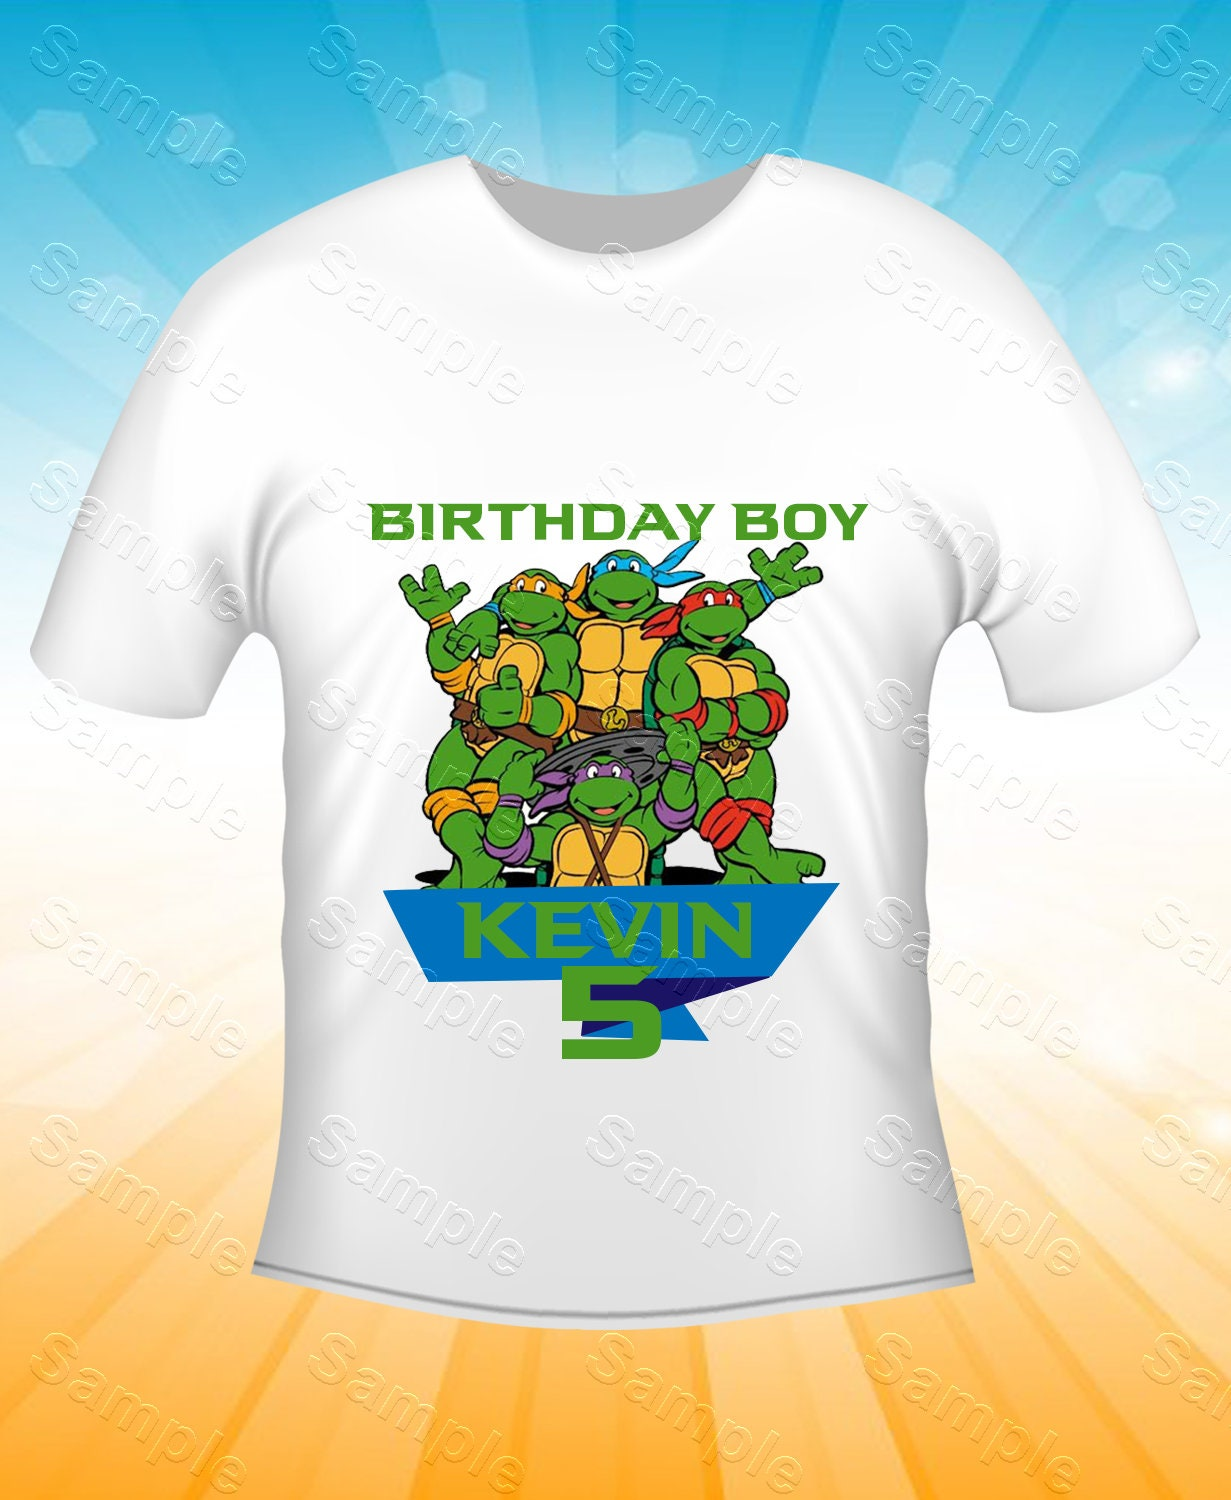 Ninja Turtles Iron On Transfer Ninja Turtles Birthday Shirt | Etsy